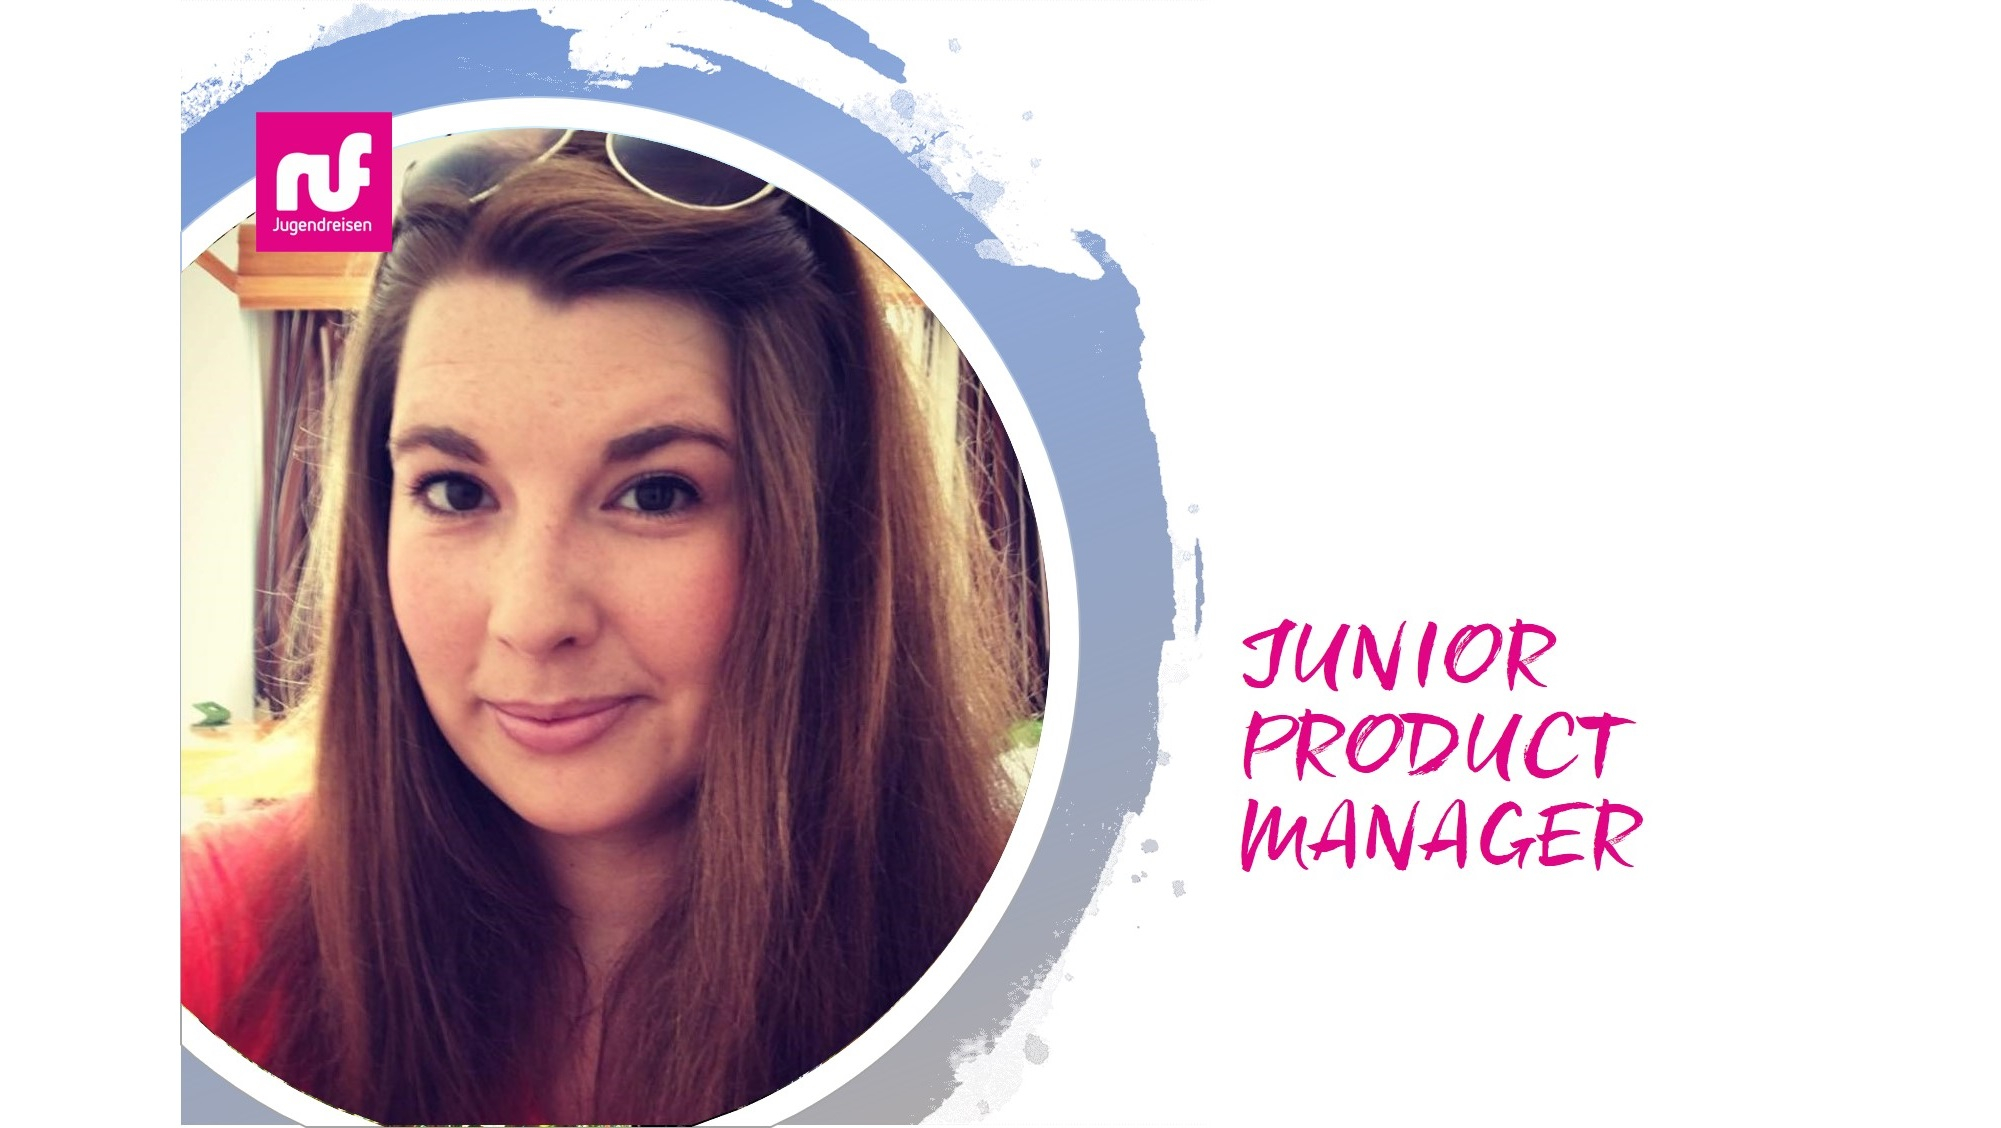 Junior Product Manager